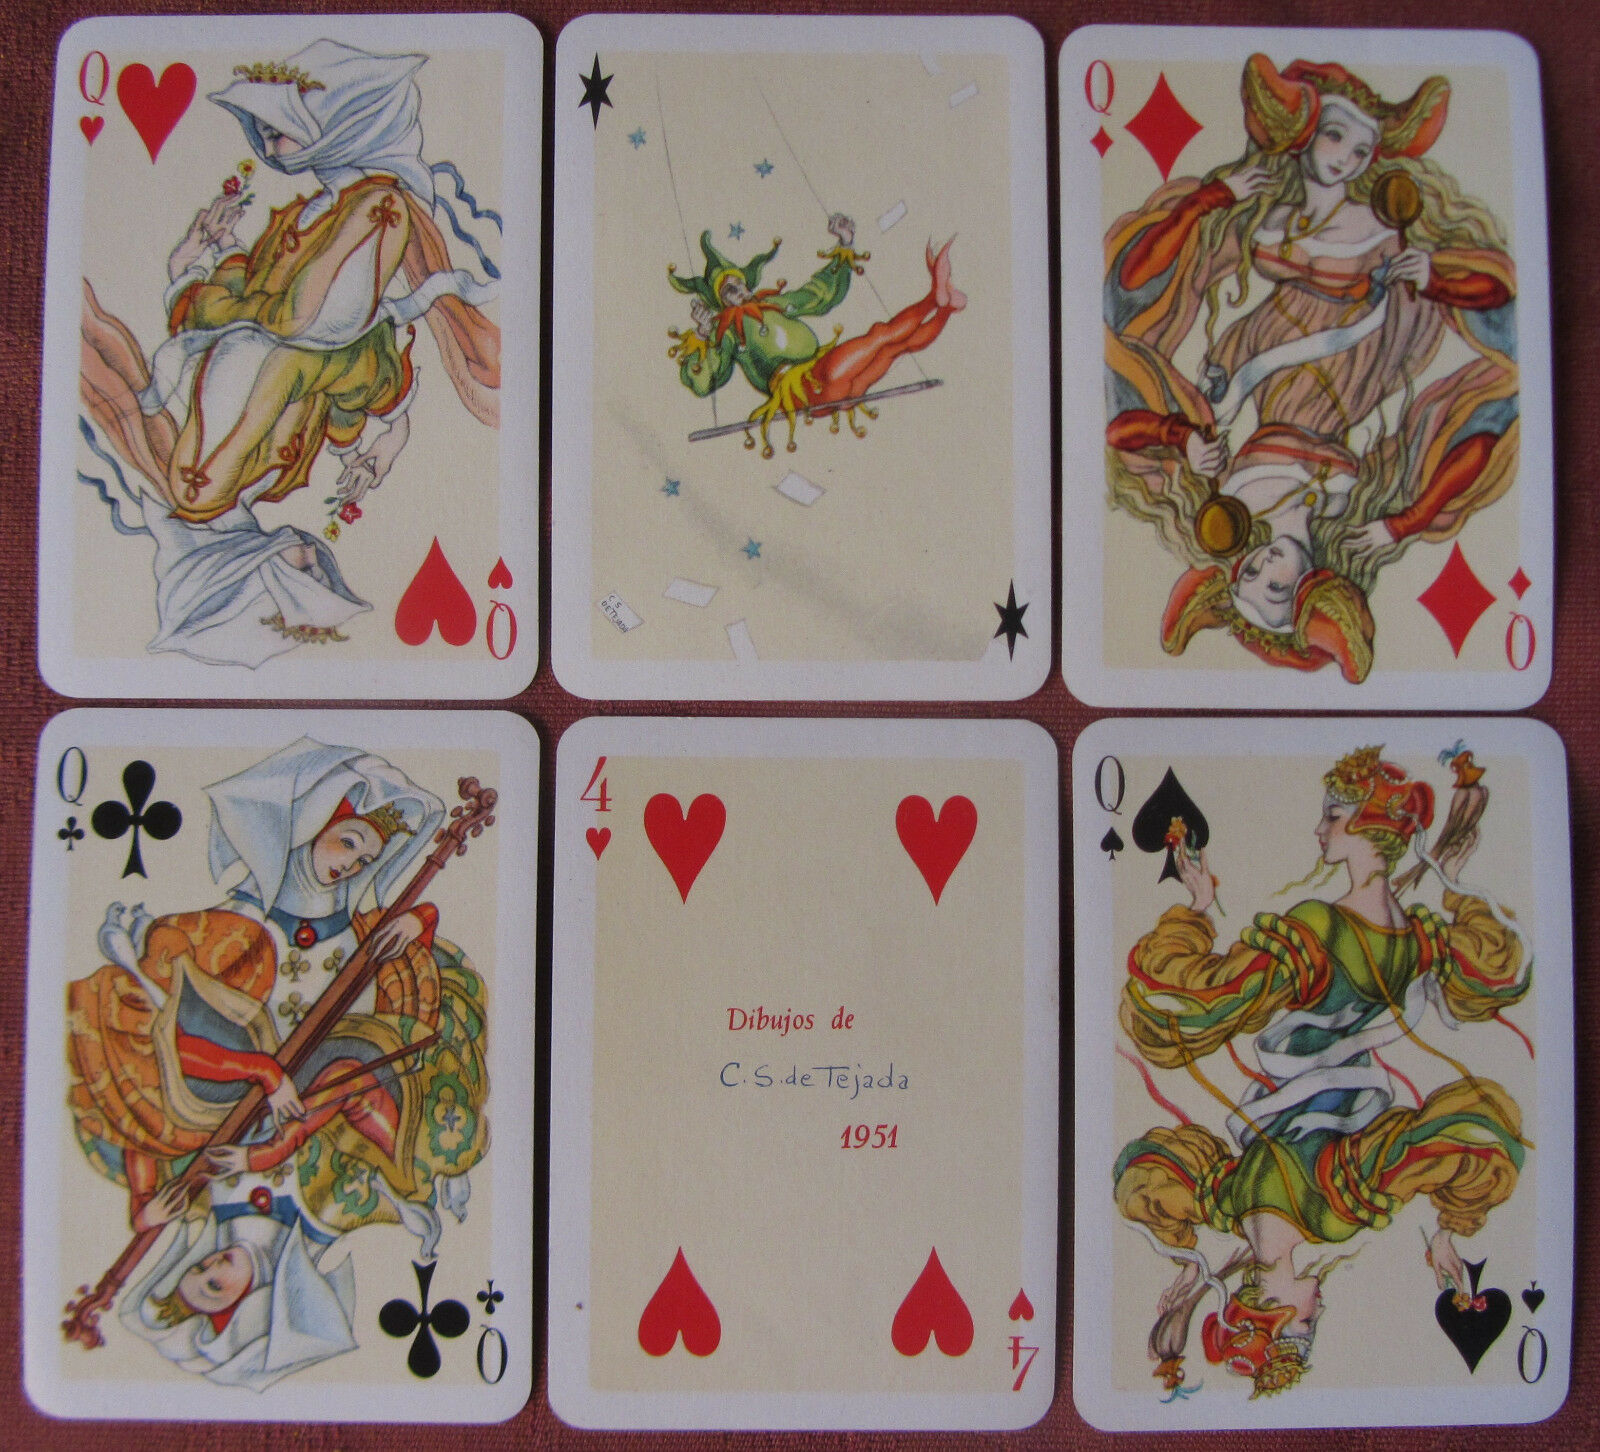 1951-CARTE DA GIOCO FOURNIER C S DE TEJADA NON STANDARD PLAYING CARDS AND JOKER